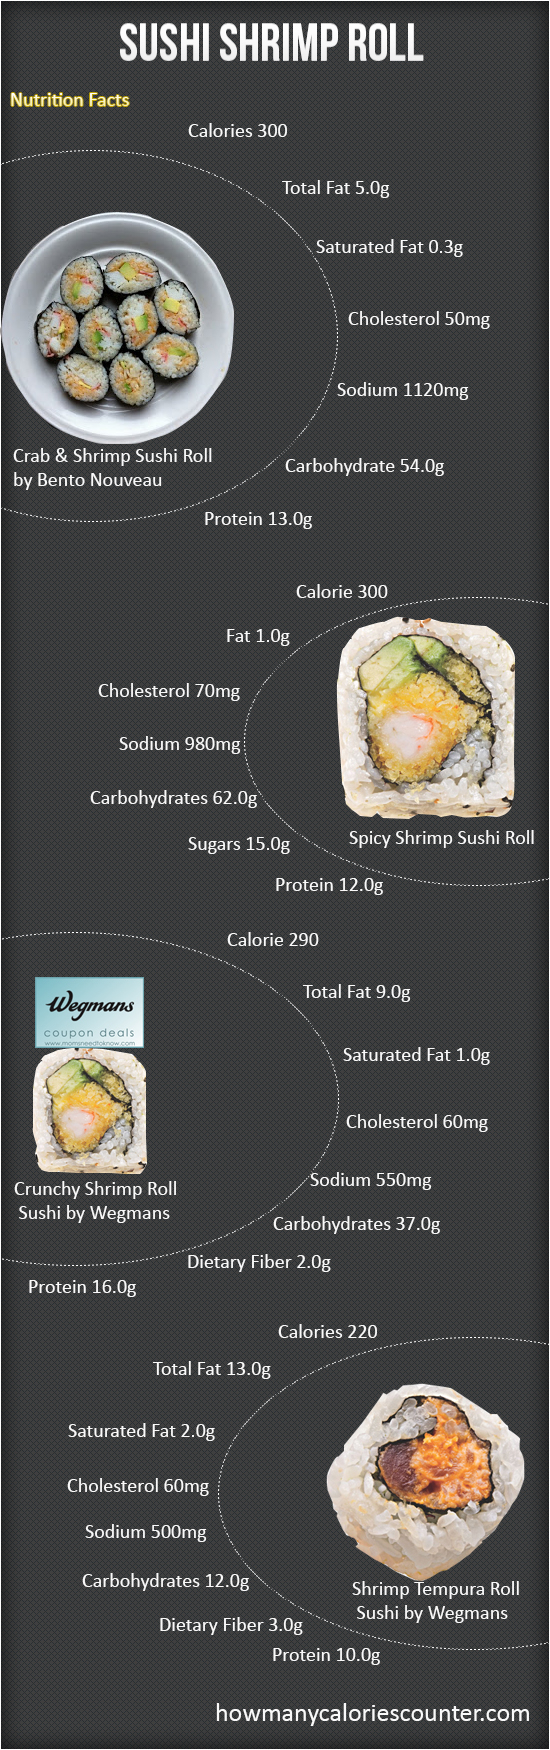 Calories in a Sushi Shrimp Roll